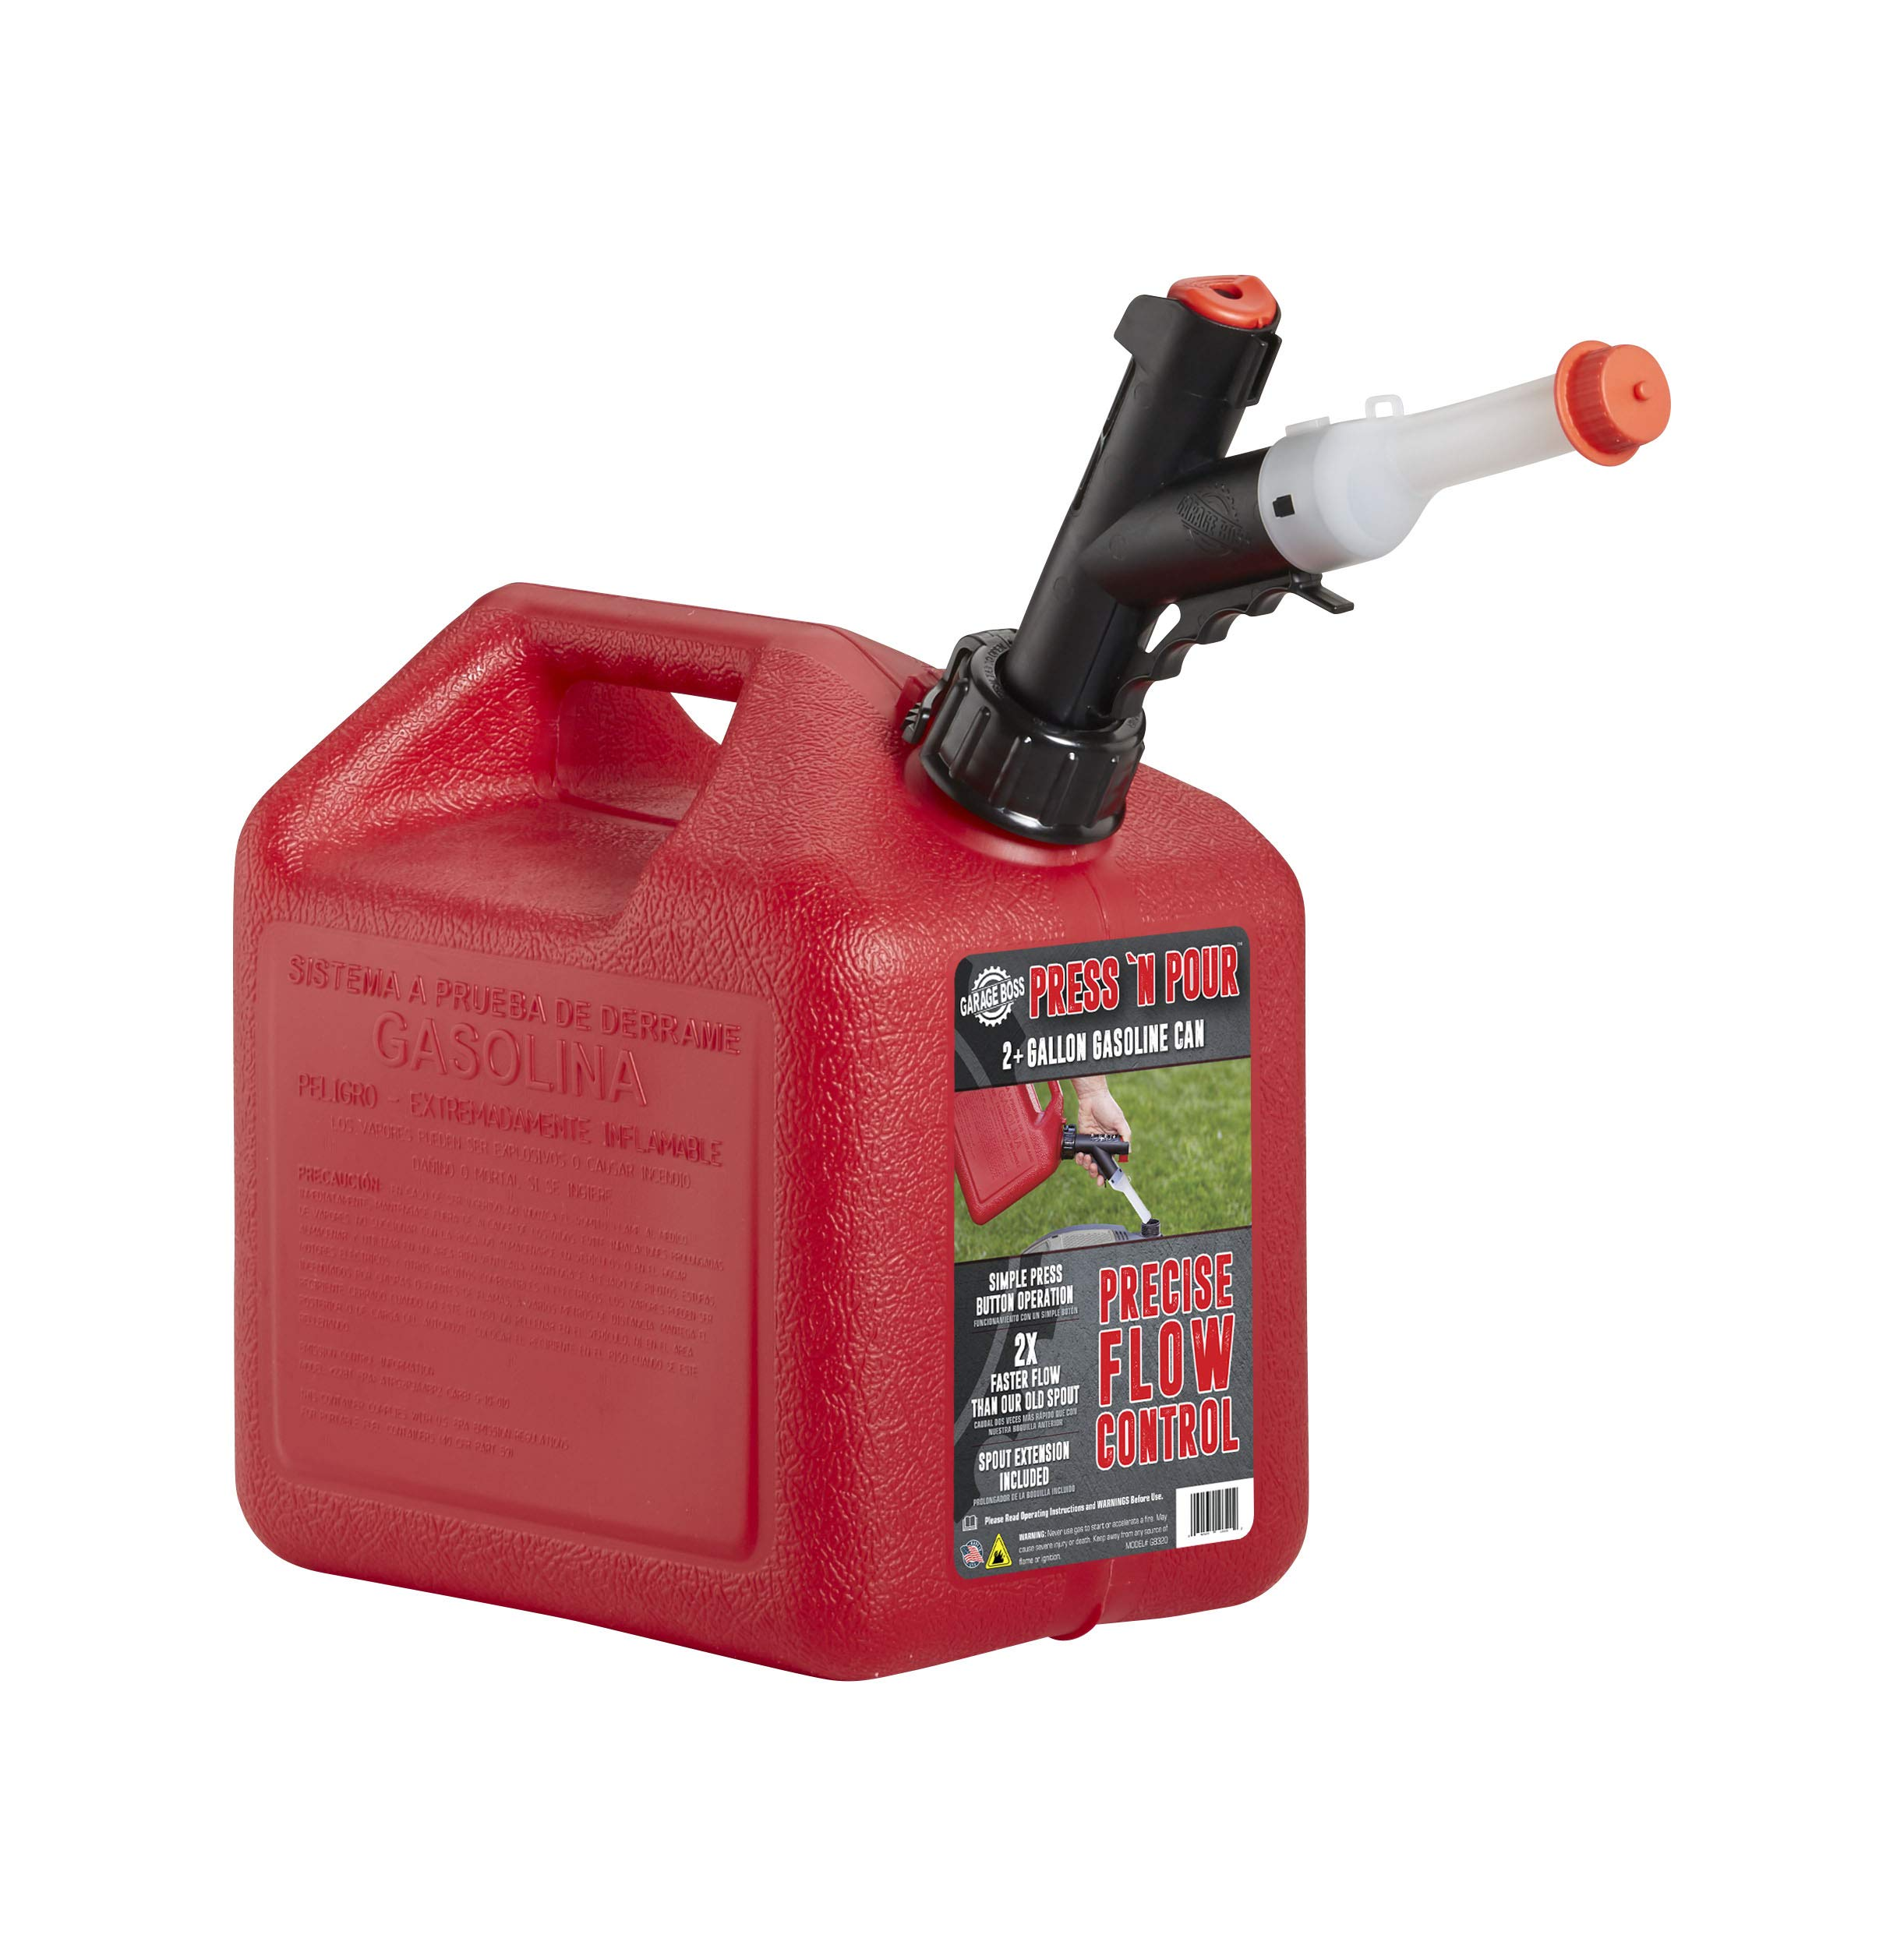 GarageBOSS GB320 Briggs and Stratton Press 'N Pour Gas Can, 2+ Gallon, Red